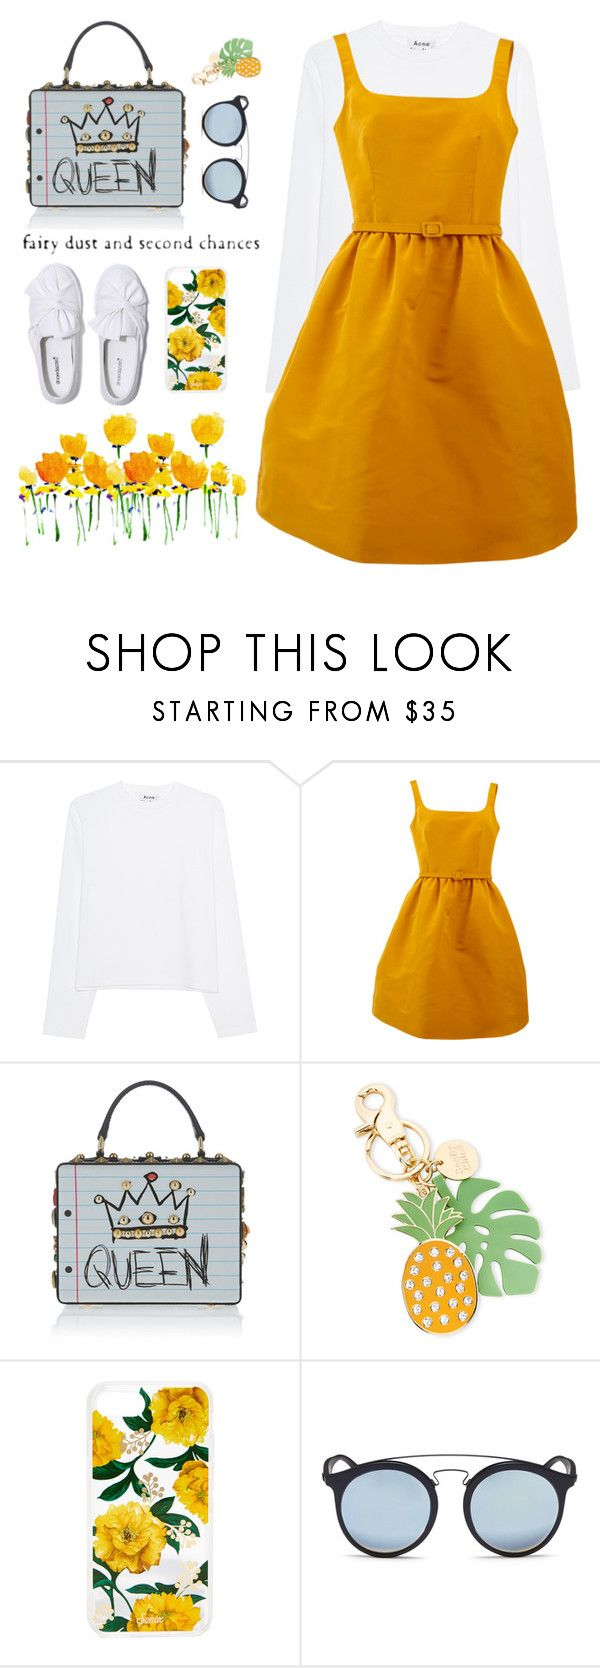 """""""FAIRY DUST"""" by sellyankumala ❤ liked on Polyvore featuring Acne Studios, Oscar de la Renta, See by Chloé, Sonix, Ray-Ban, kawaii, queen and brunchgoals"""